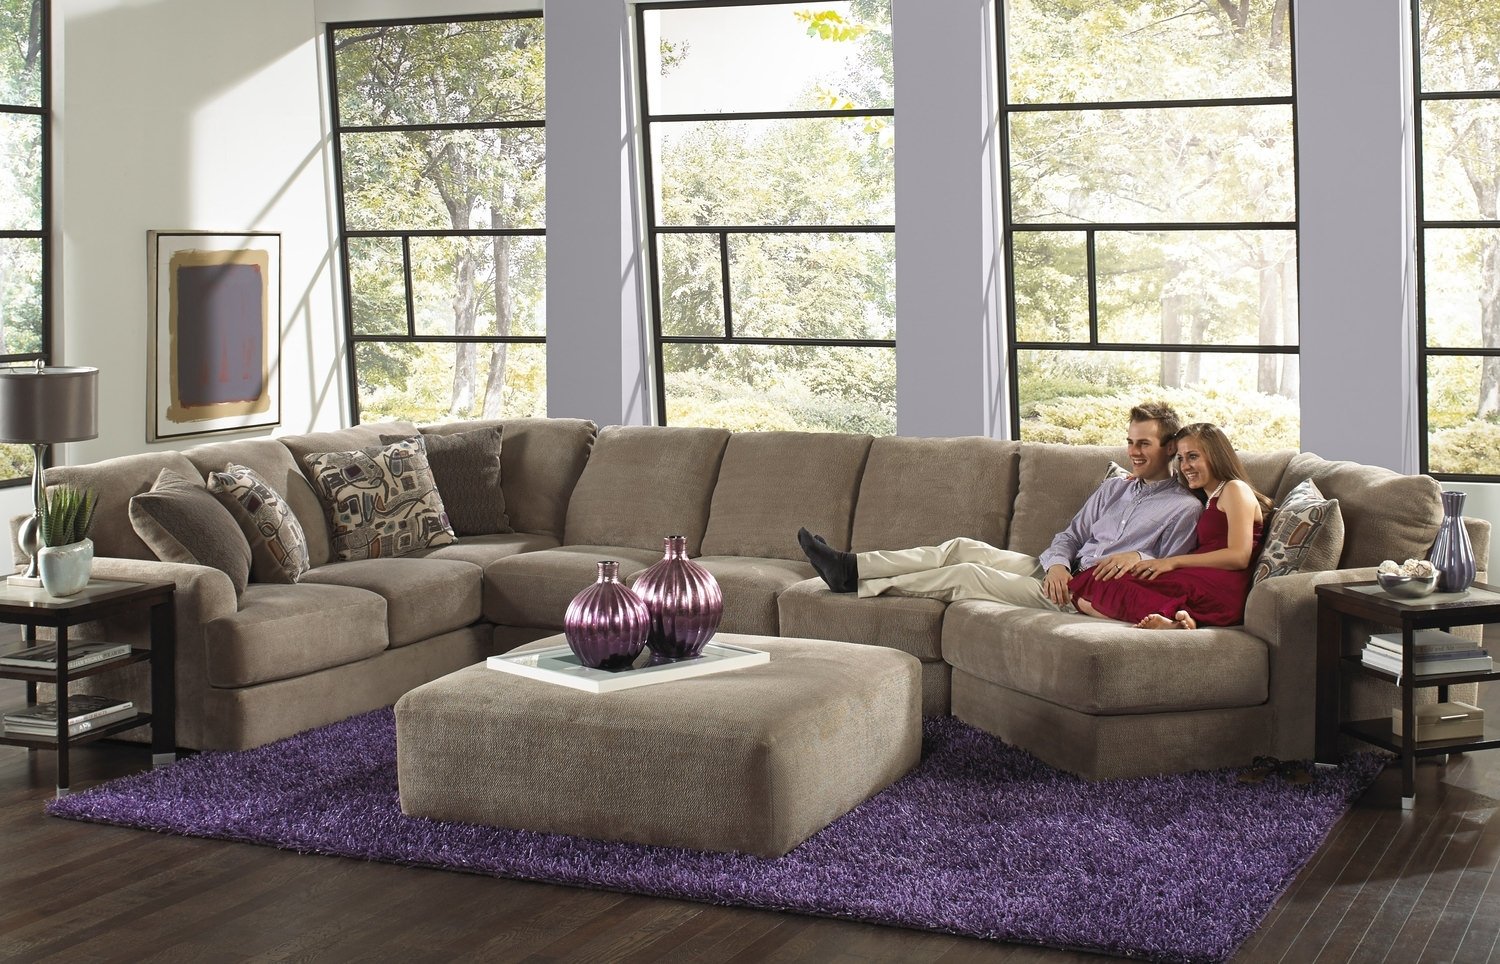 Regal 3 Piece Modular Sectional | Hom Furniture In St Cloud Mn Sectional Sofas (View 10 of 10)